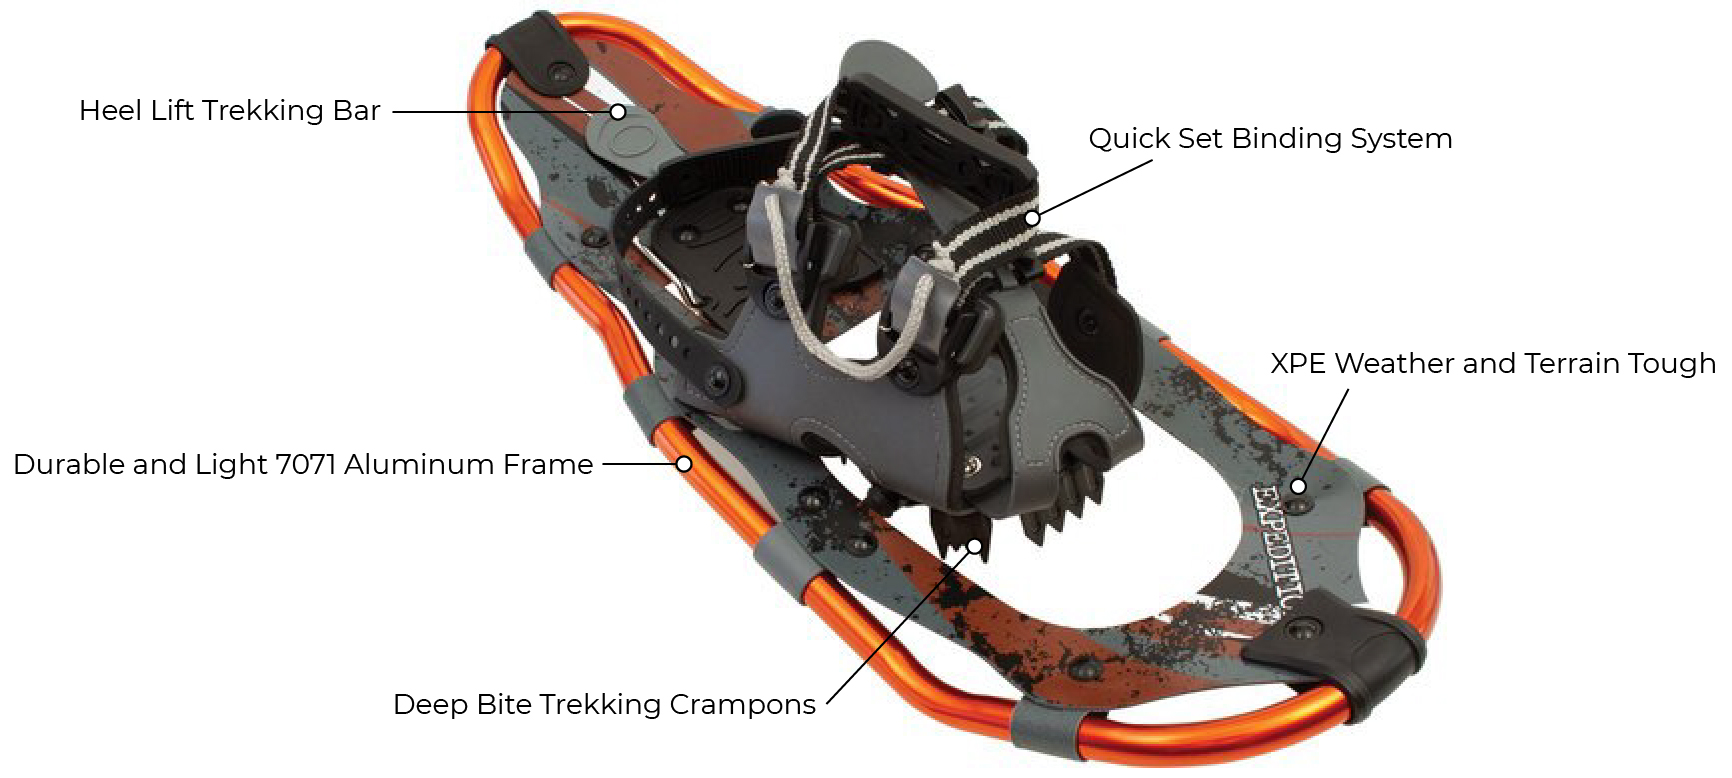 snowshoe features